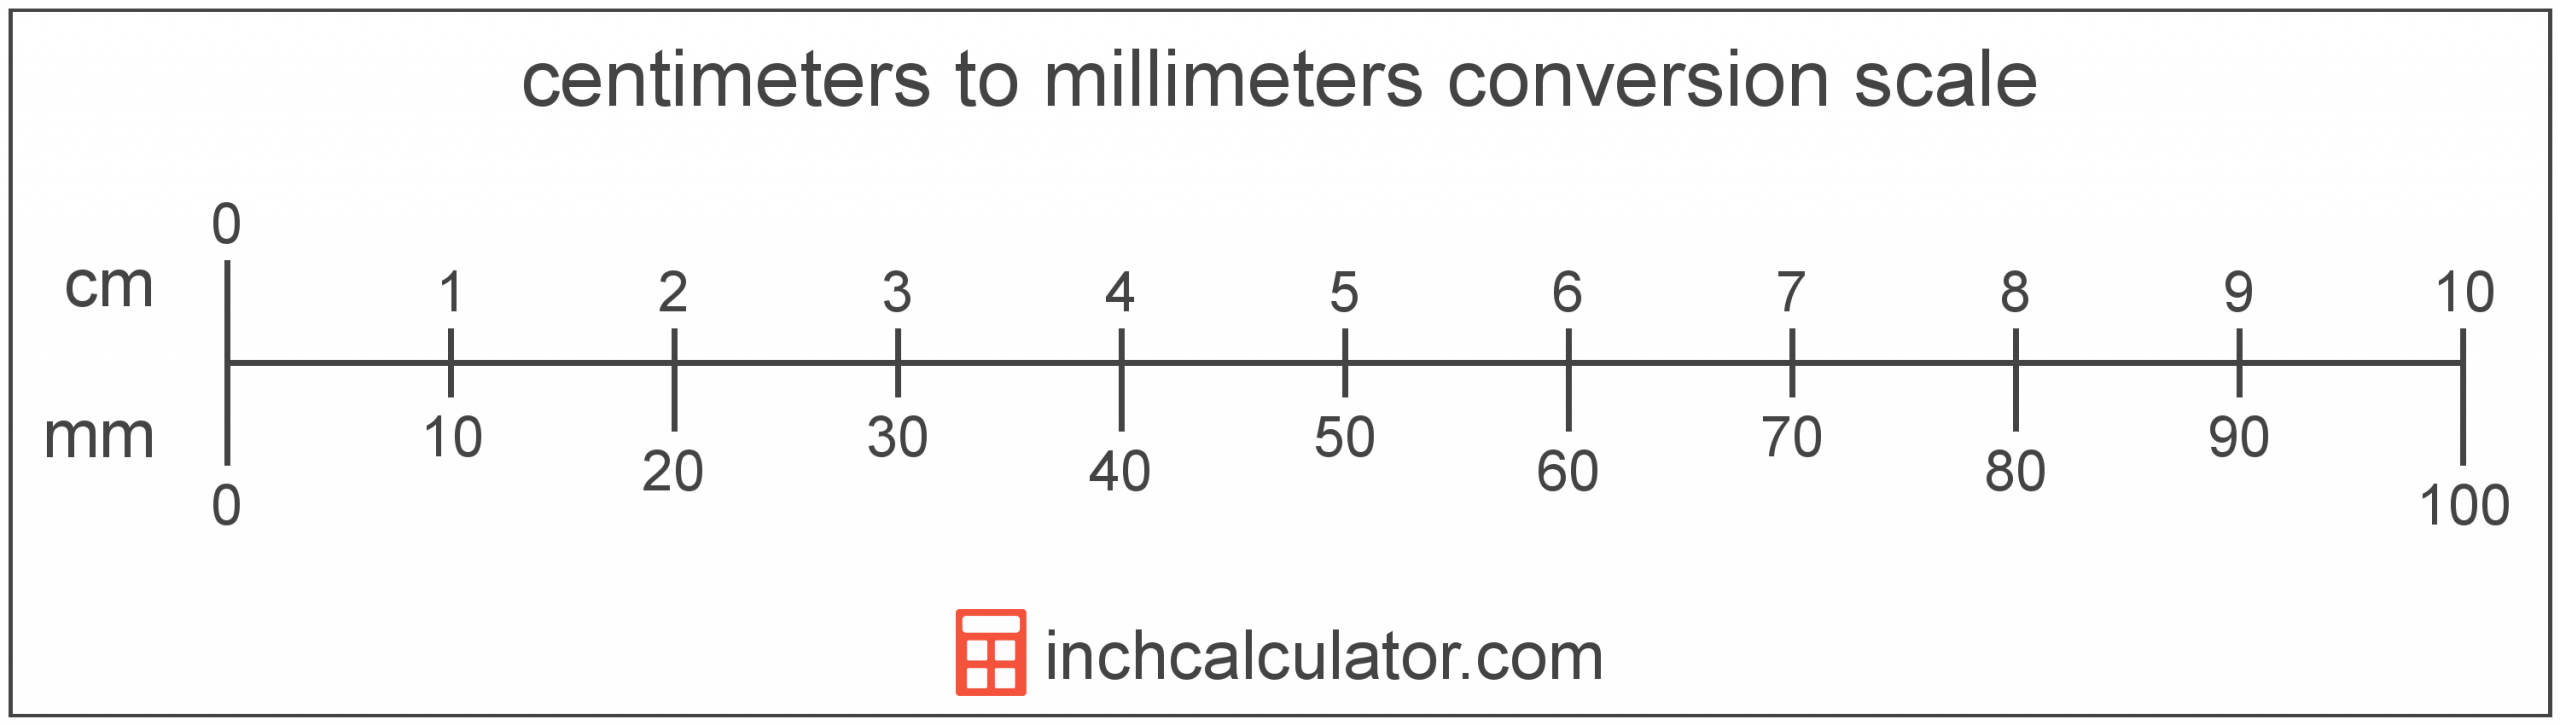 Centimeters To Millimeters Conversion (Cm To Mm)